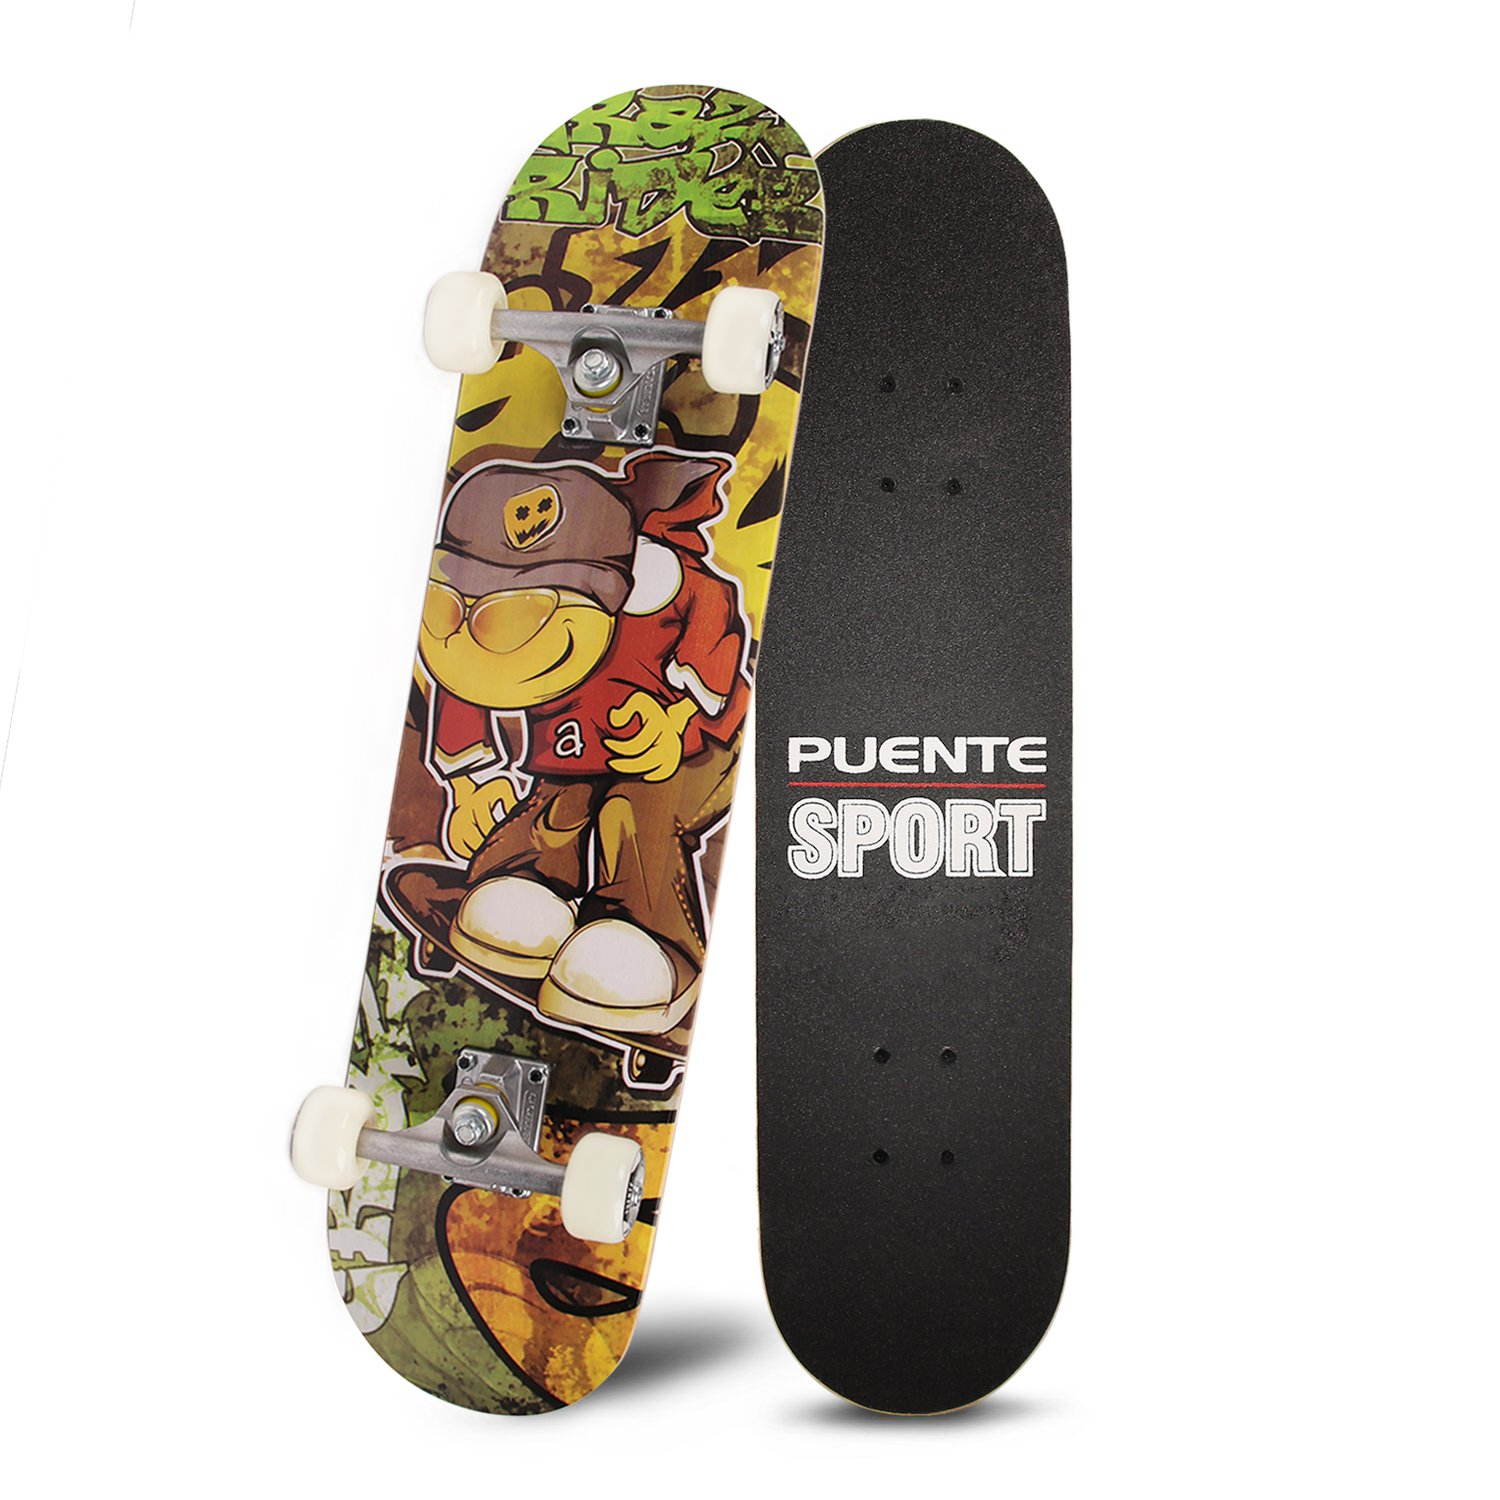 PUENTE 31'' Skateboards Complete,Tricks Skateboard for Beginners & Pro- 7 Layer Canadian Maple Wood Double Kick Concave Skateboard